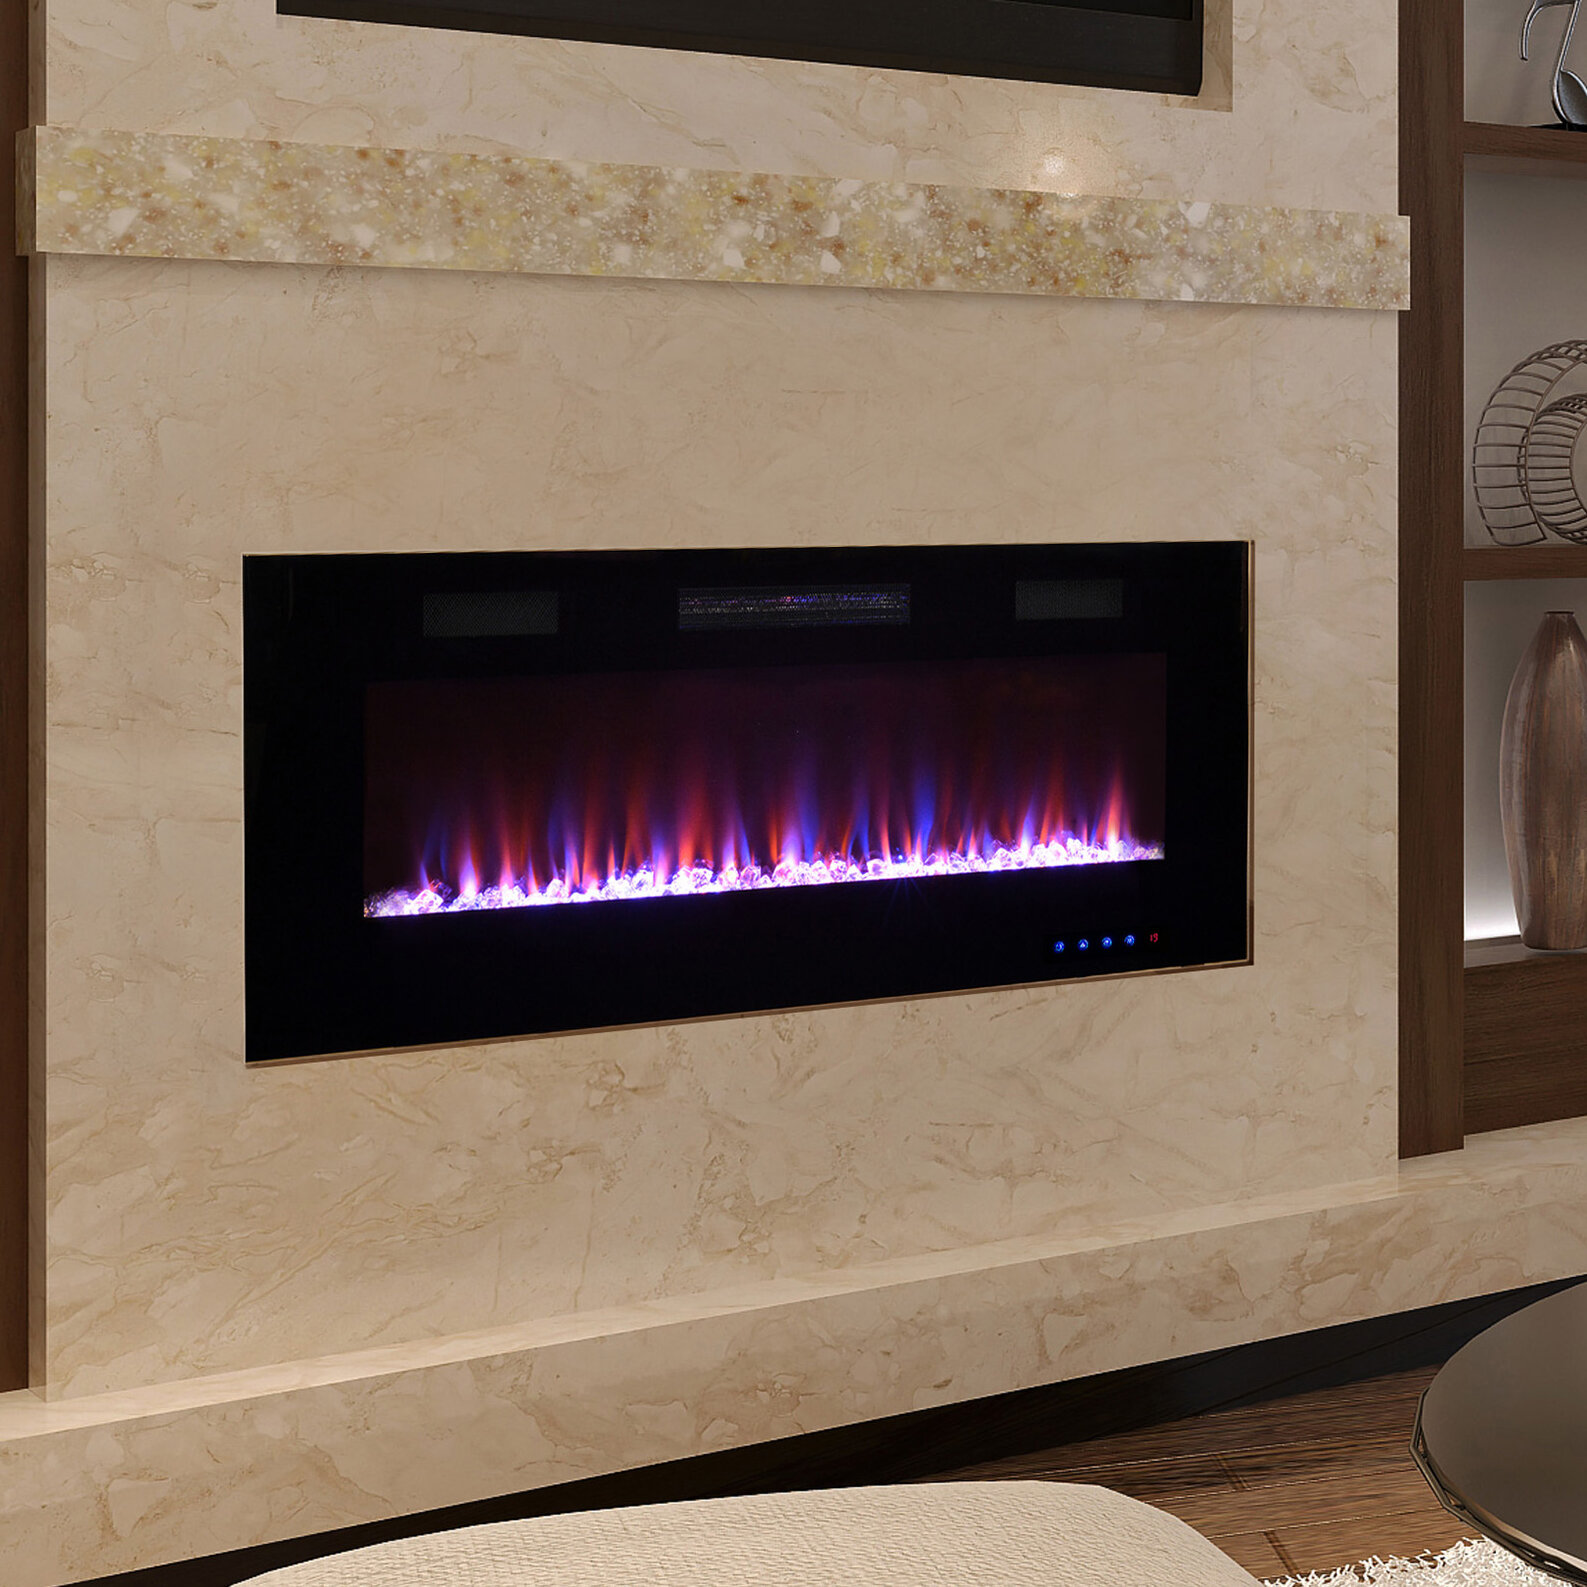 Miraculous Pacific Heat Recessable Wall Mounted Electric Fireplace Home Interior And Landscaping Analalmasignezvosmurscom